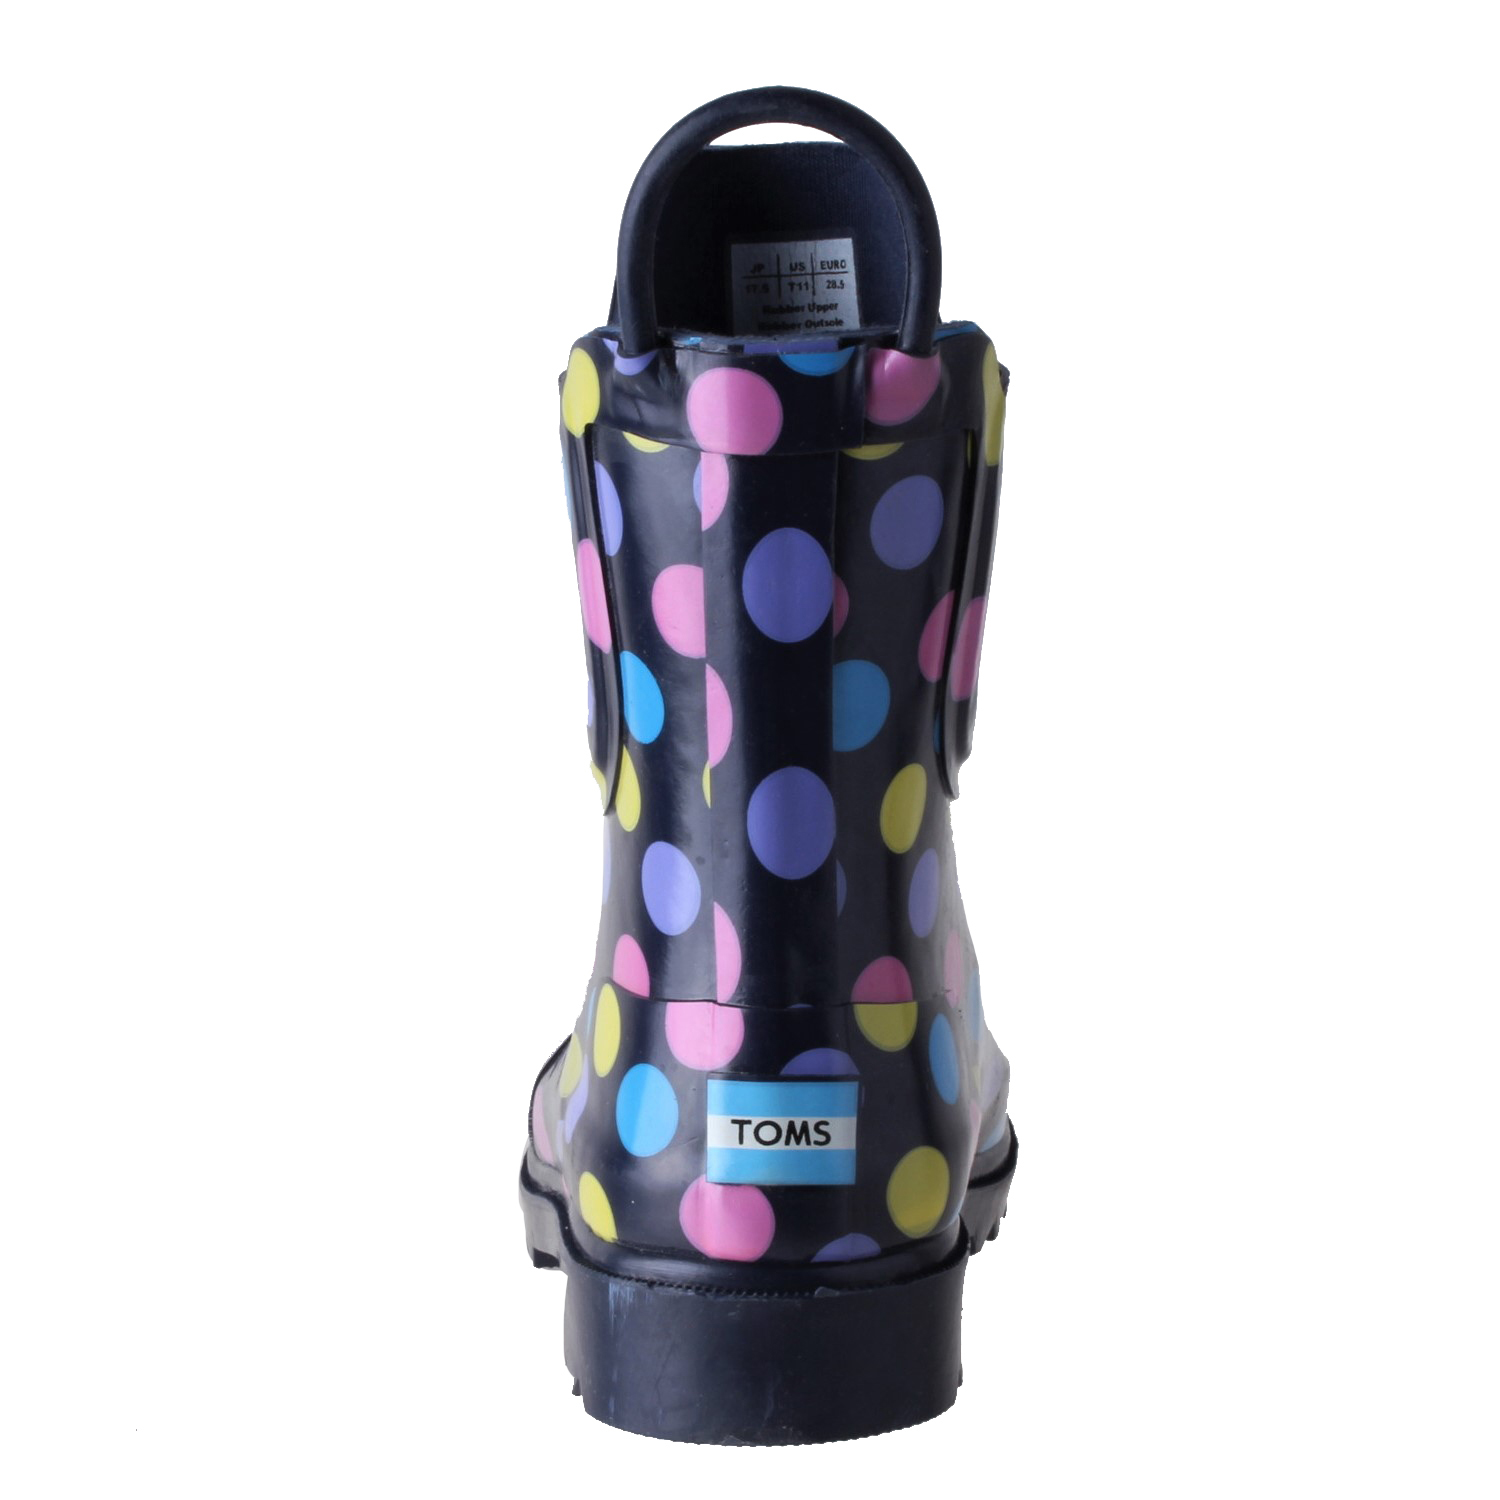 Toms Girls Rain Boot Shoes Multi Dot Rubber 10003609 Size 11 886468731225 Ebay